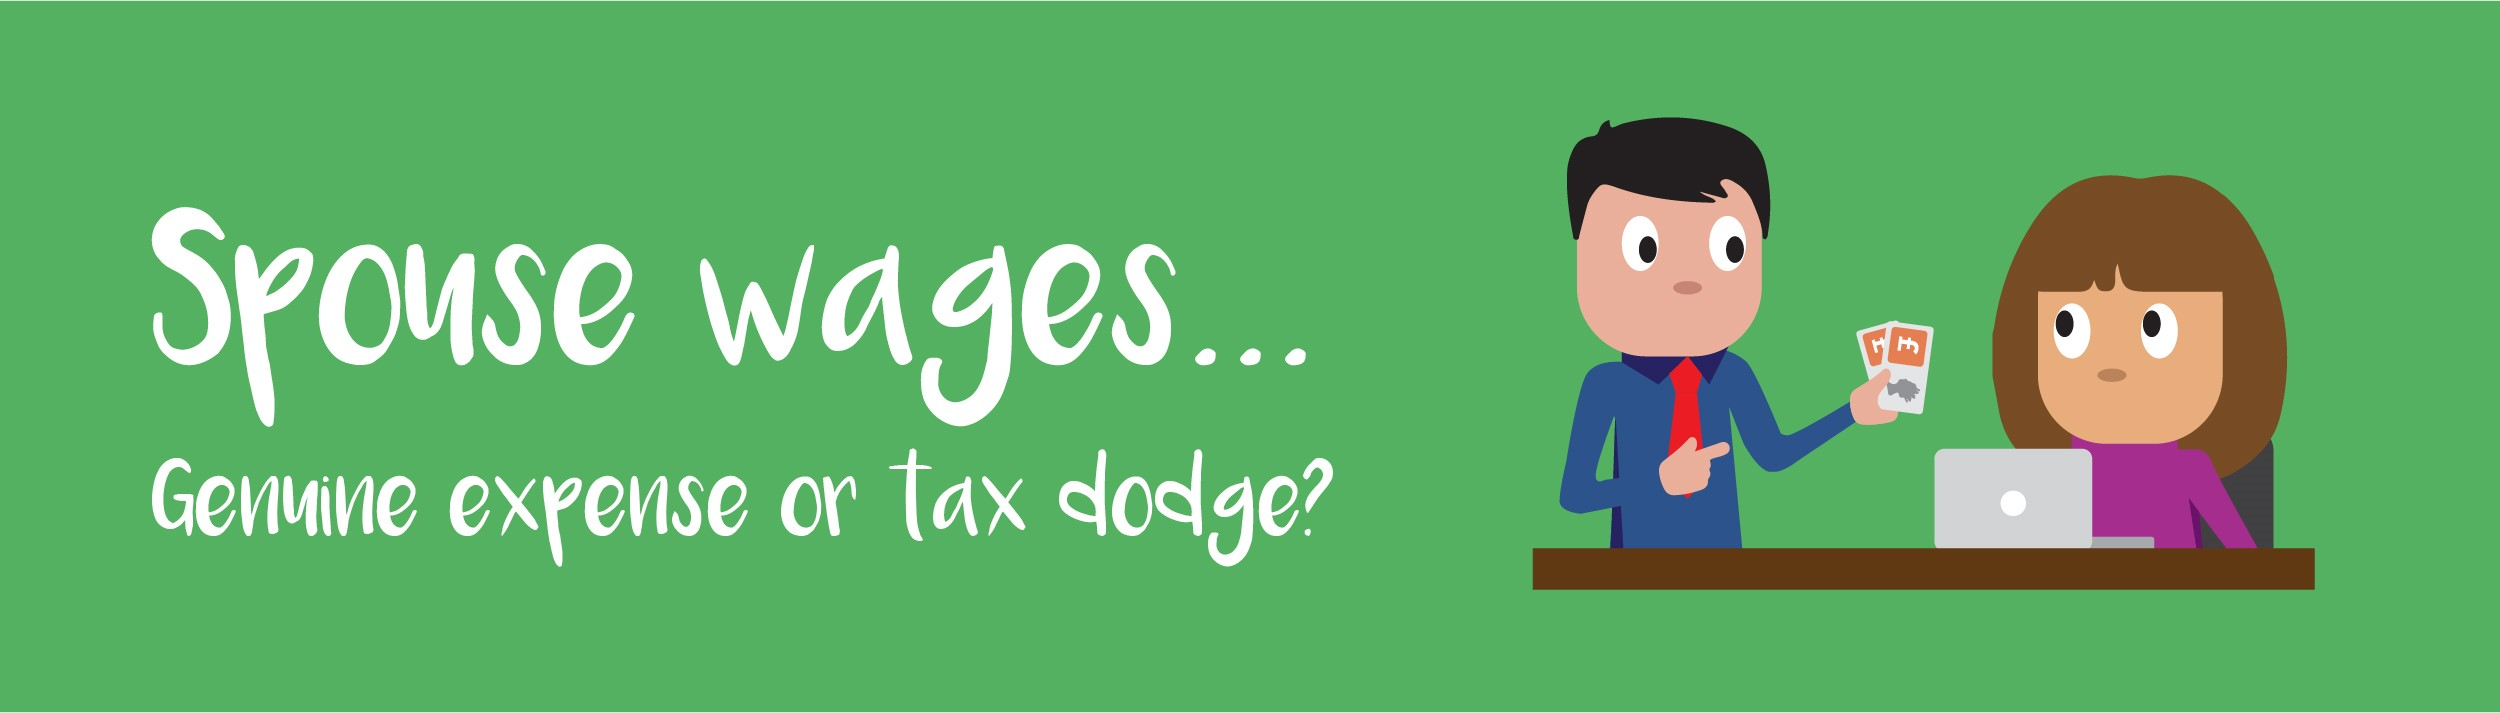 affordable accountancy wirral accountants tax vat income revenue payroll